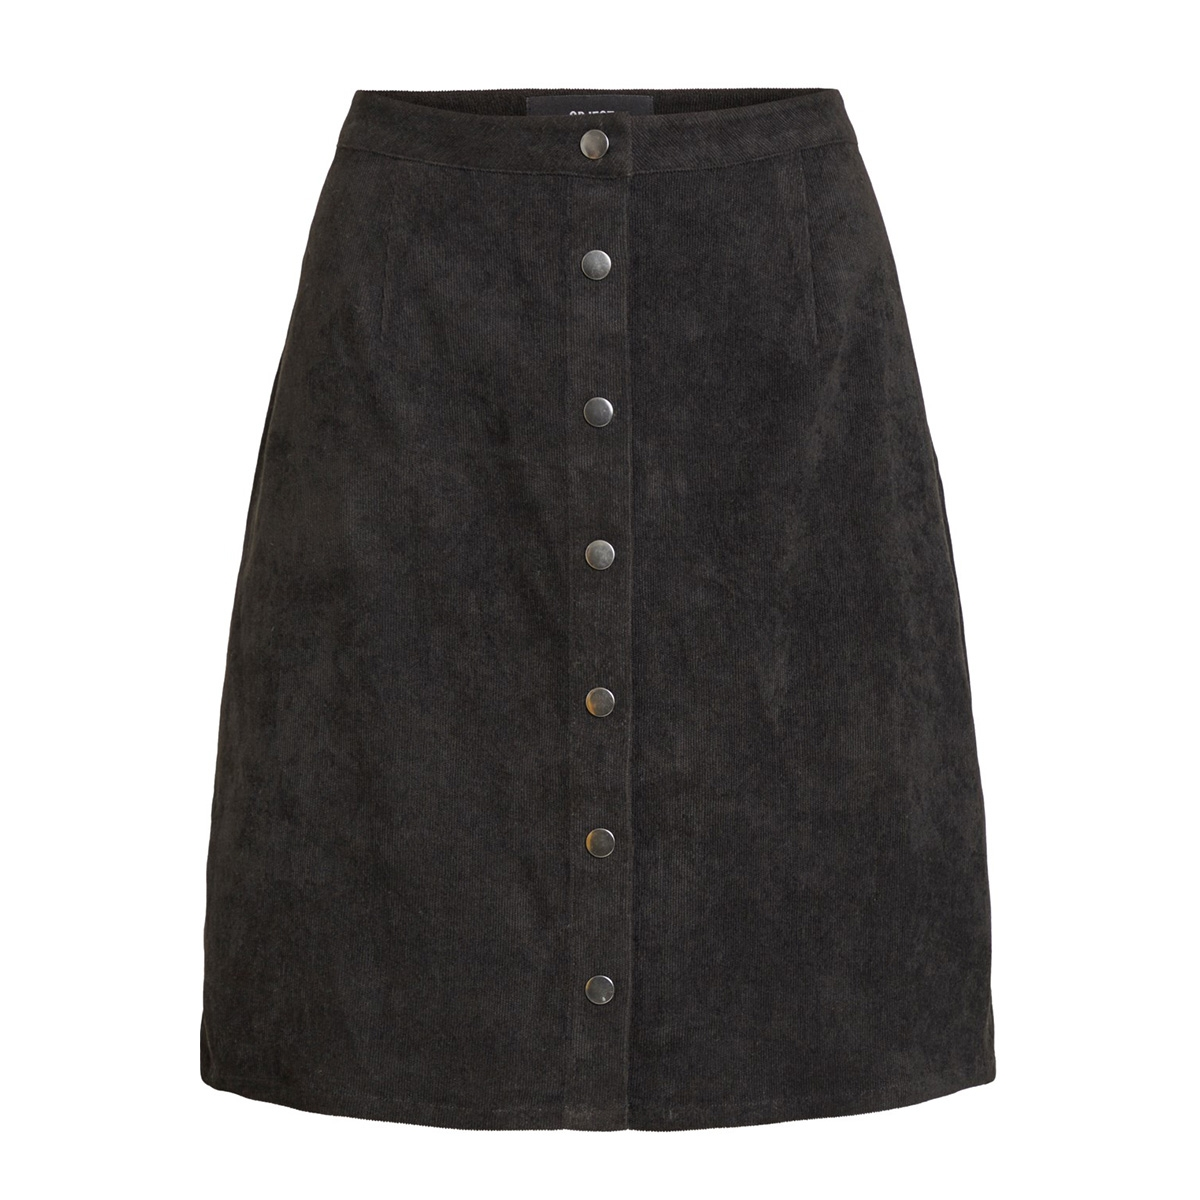 objshannah hw skirt 104 23030380 object rok black